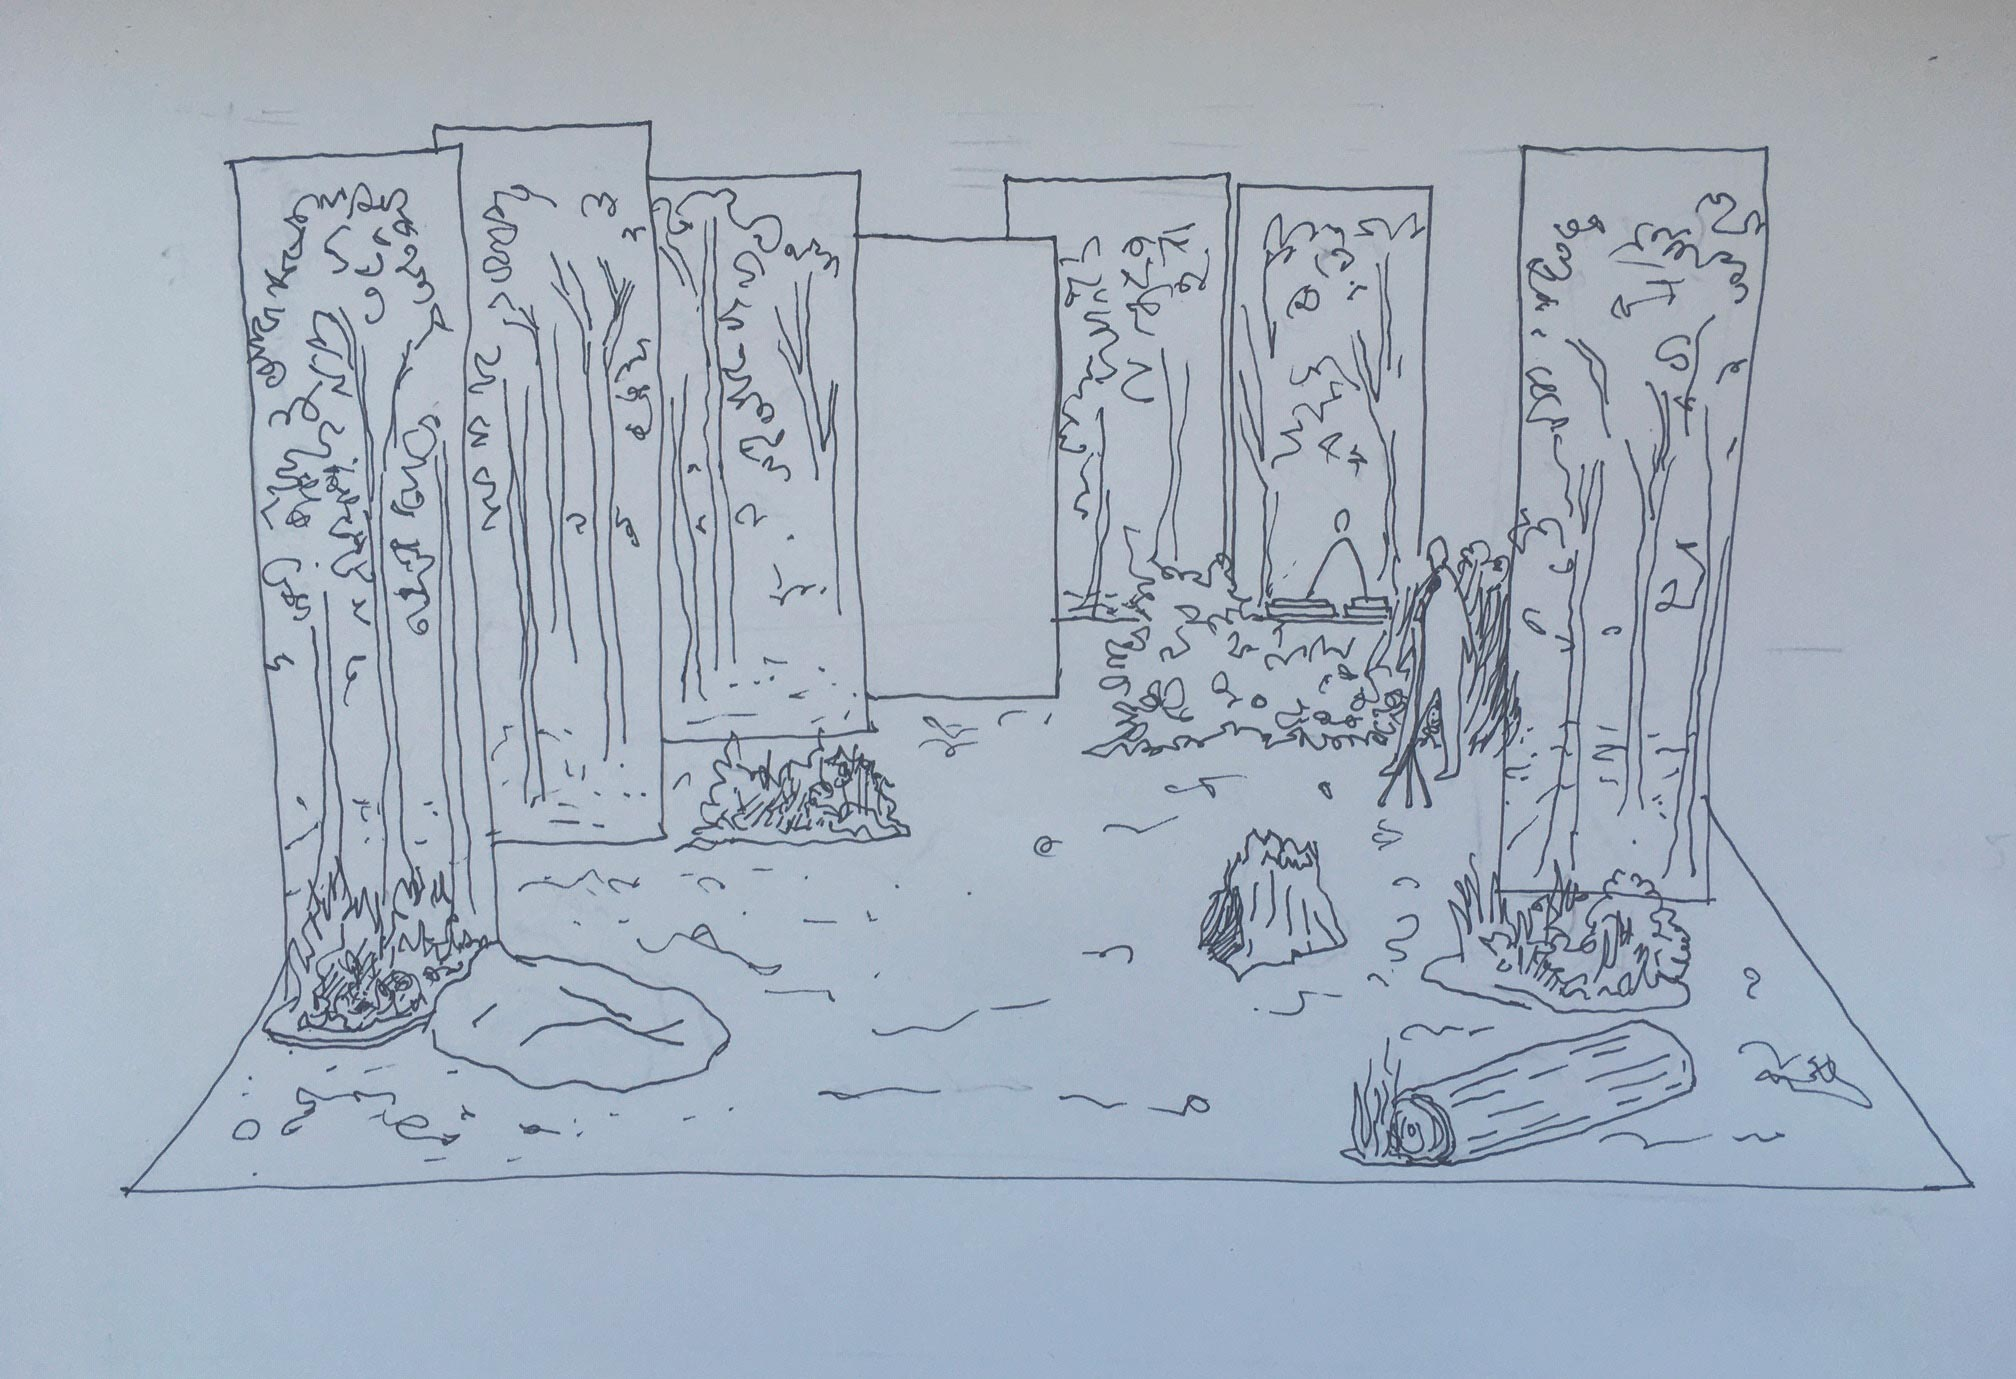 A preliminary sketch of stage design by Marie Szersnovicz